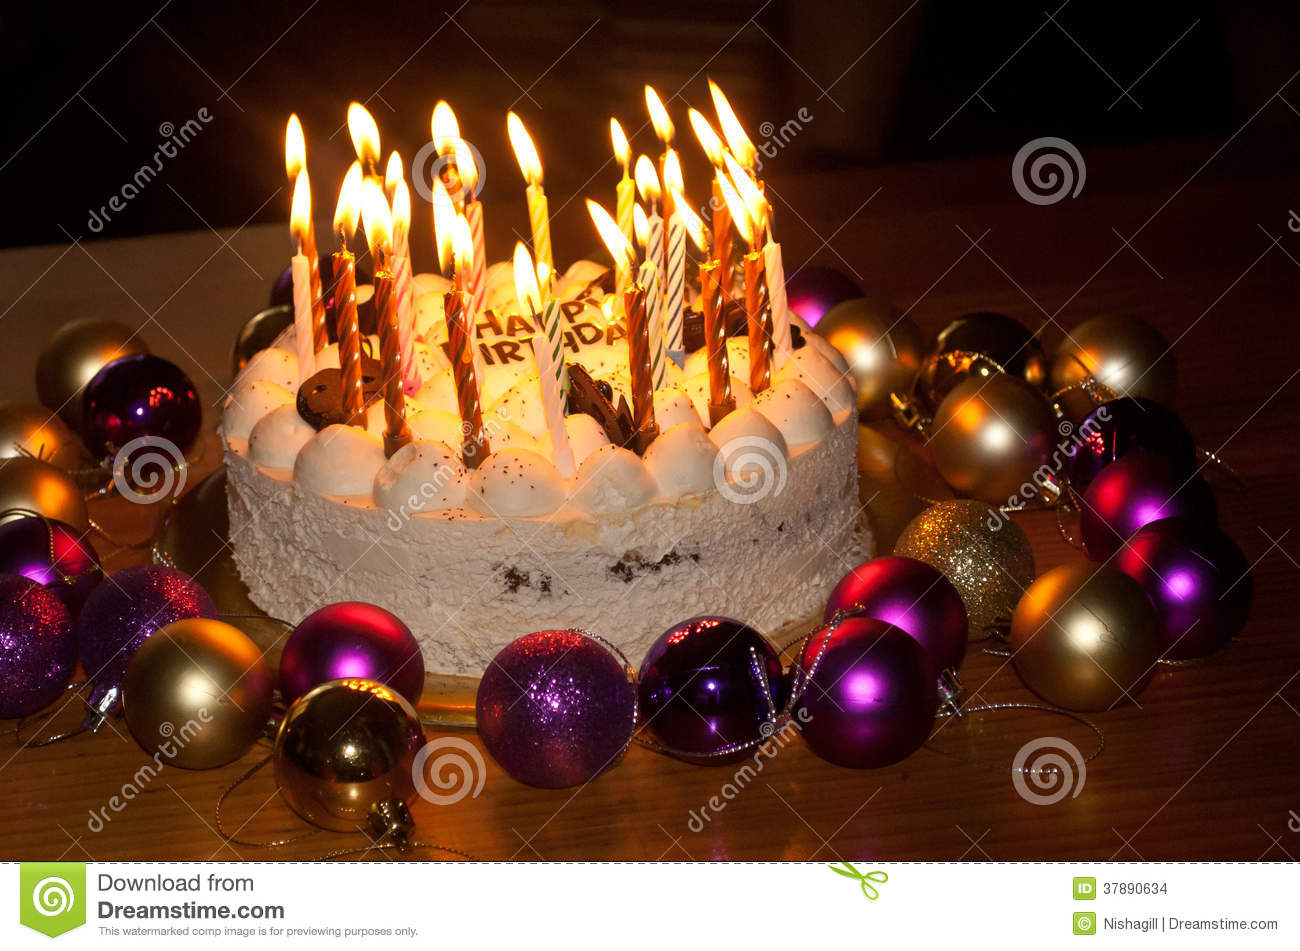 picture of birthday cake with burning candles ; birthday-cake-burning-candles-37890634